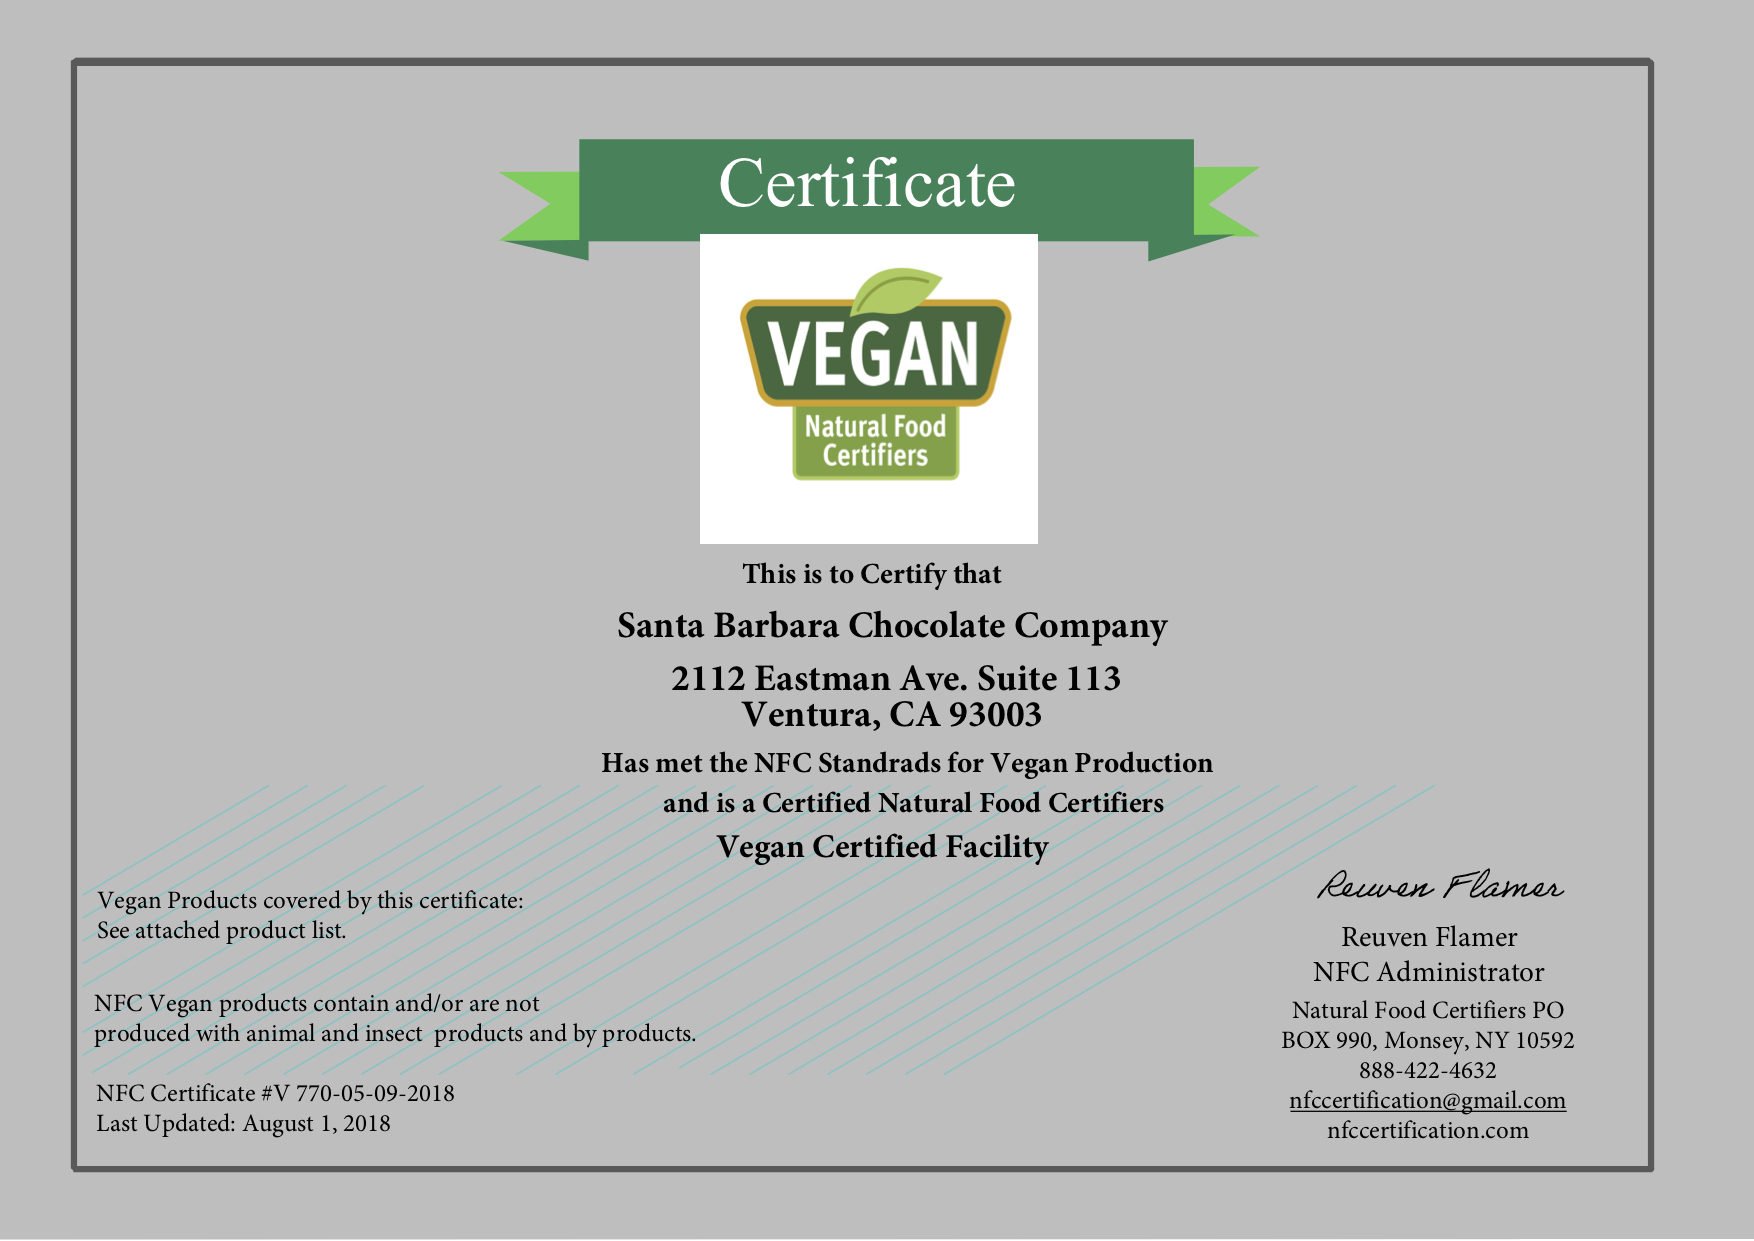 santa-barbara-chocolate-vegan-cert-2018-page-1-.jpg